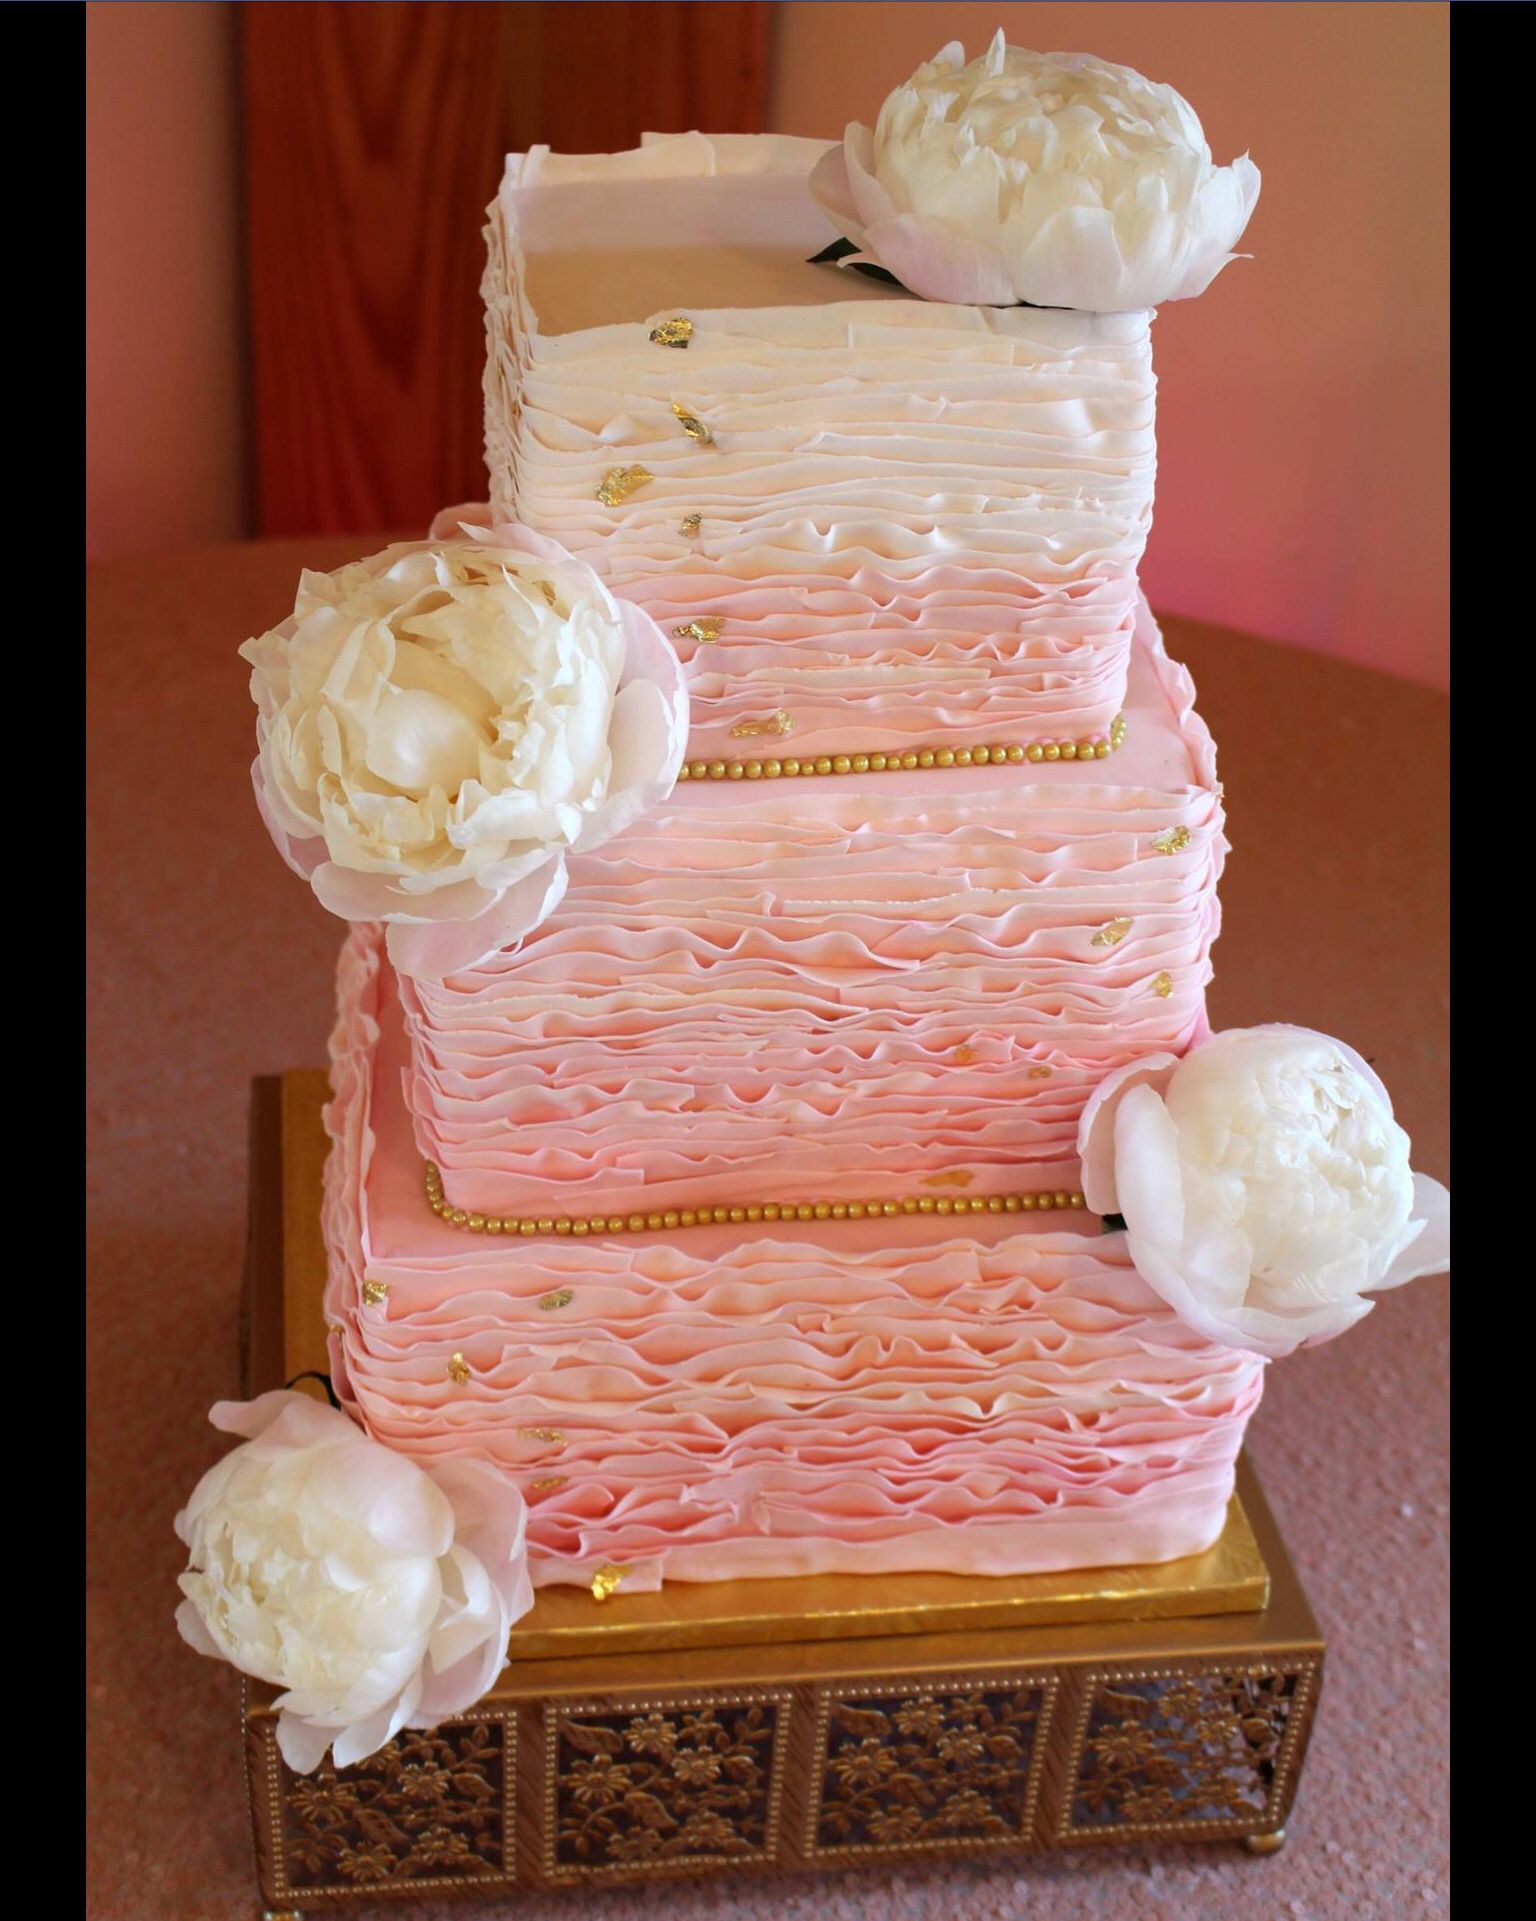 Pink ombre ruffle wedding cake with edible gold details and peonies ...